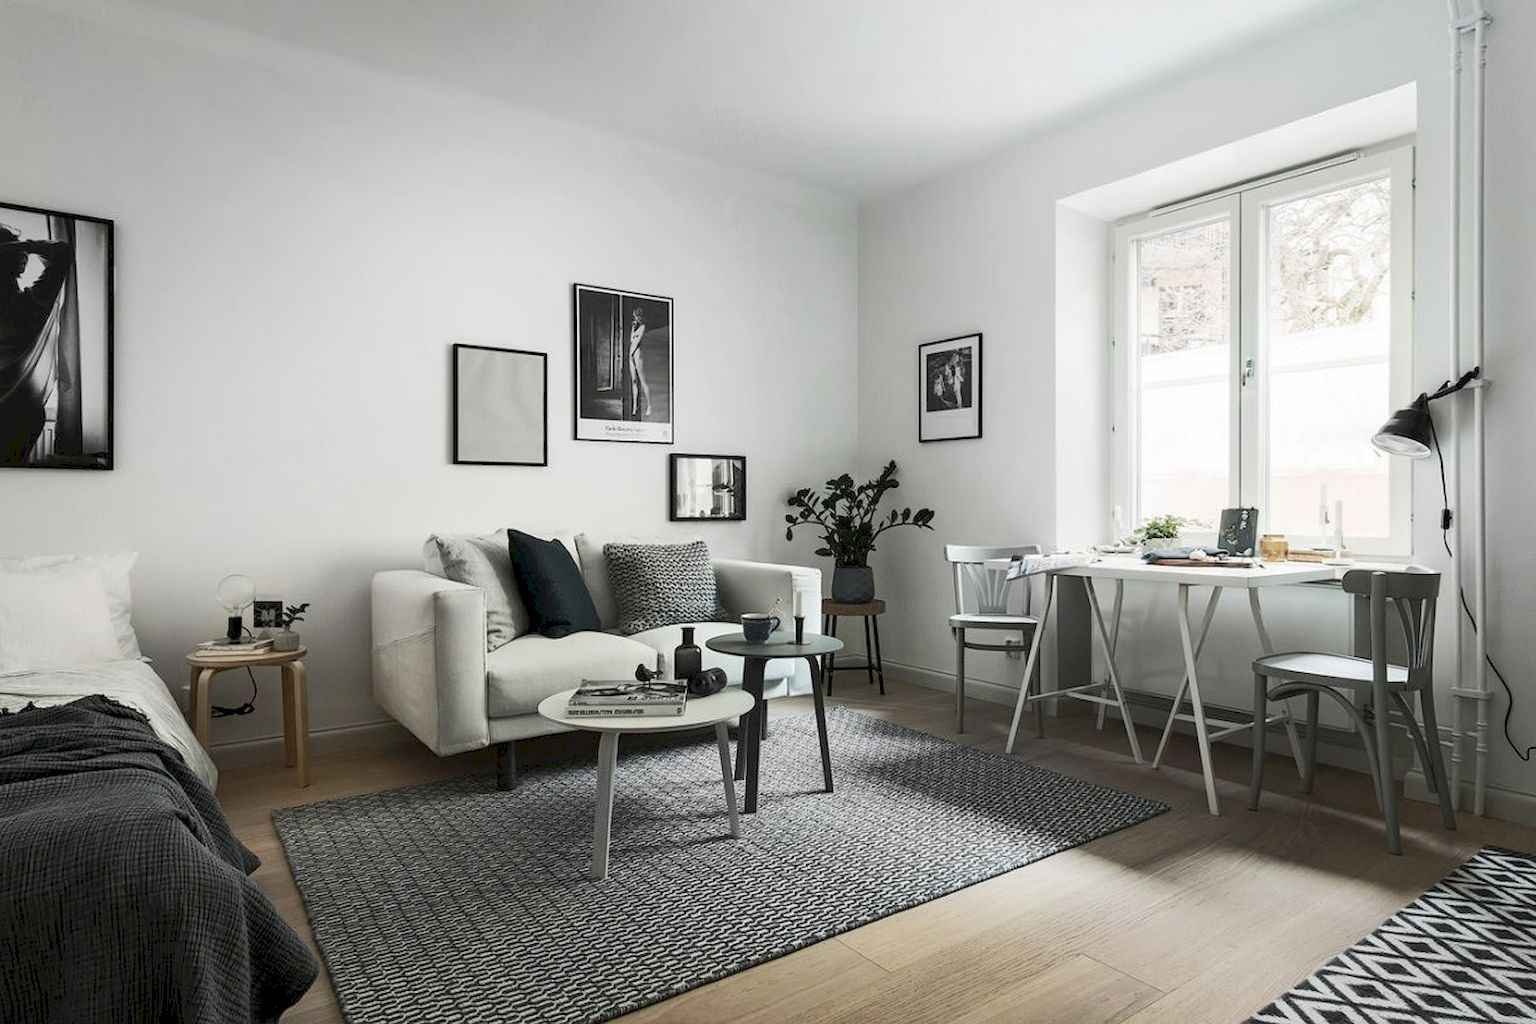 Cool small apartment decorating ideas on a budget (25)